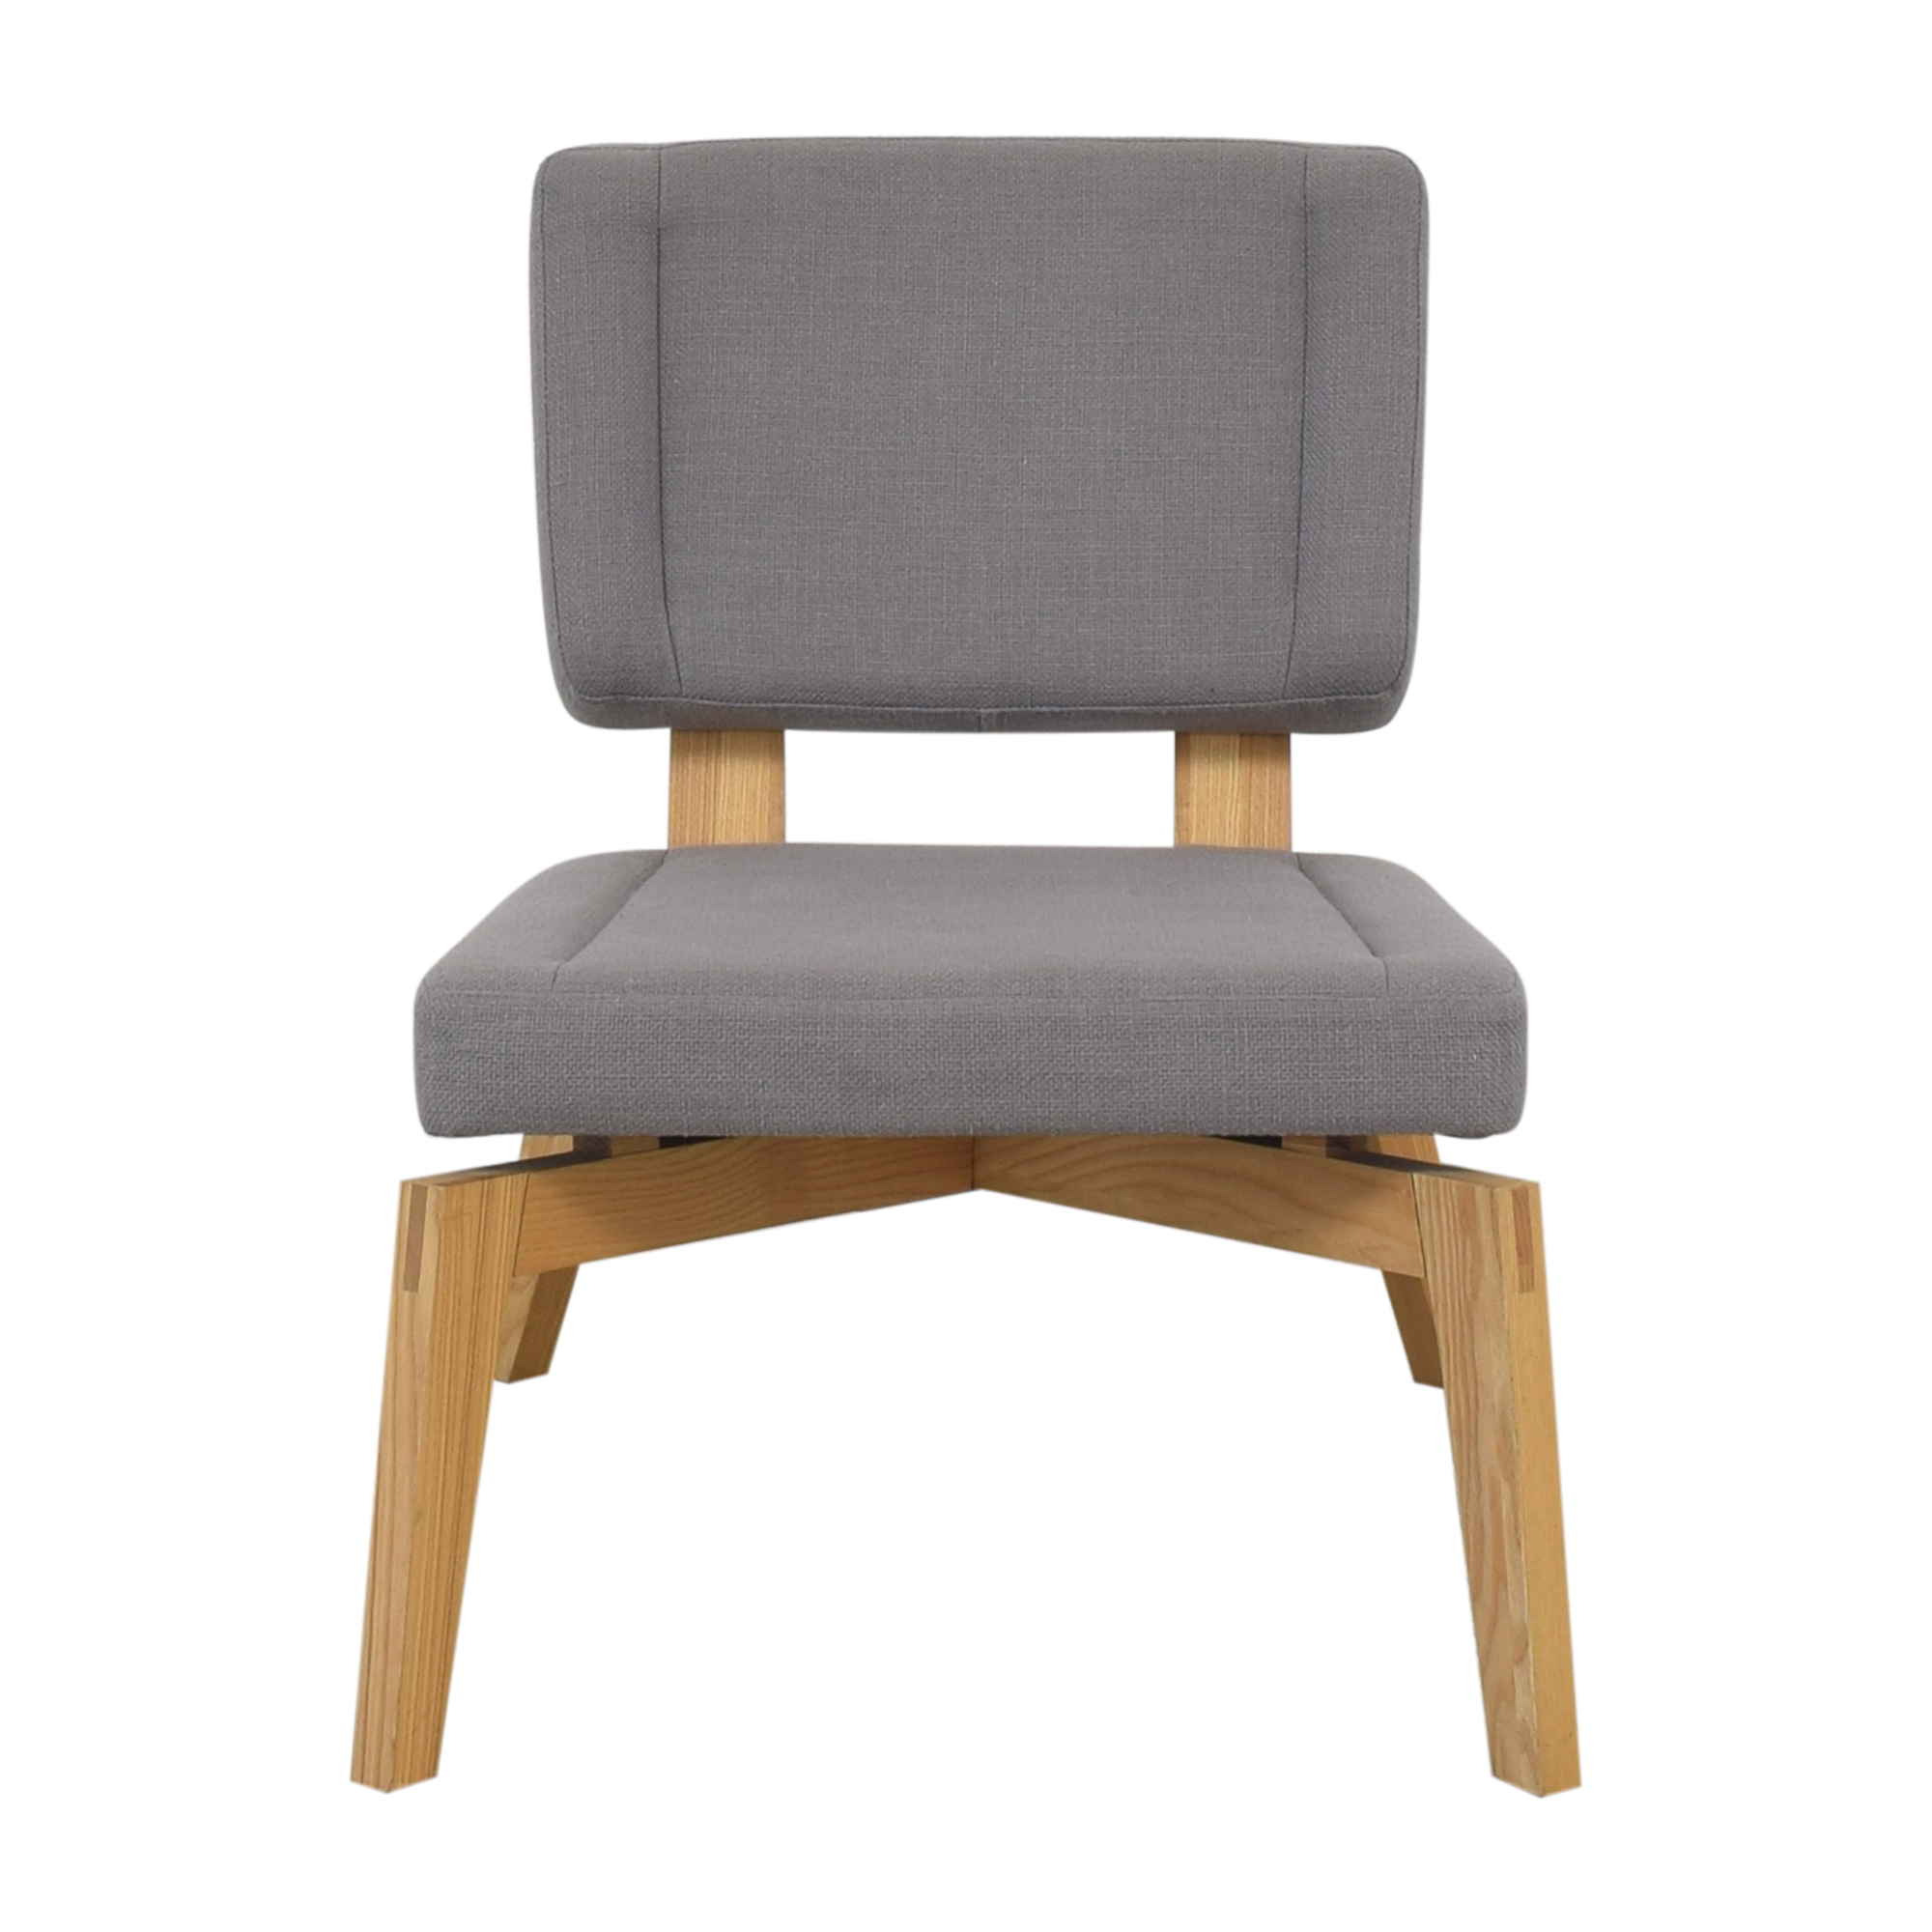 CB2 Lounge Chair with Ottoman / Accent Chairs